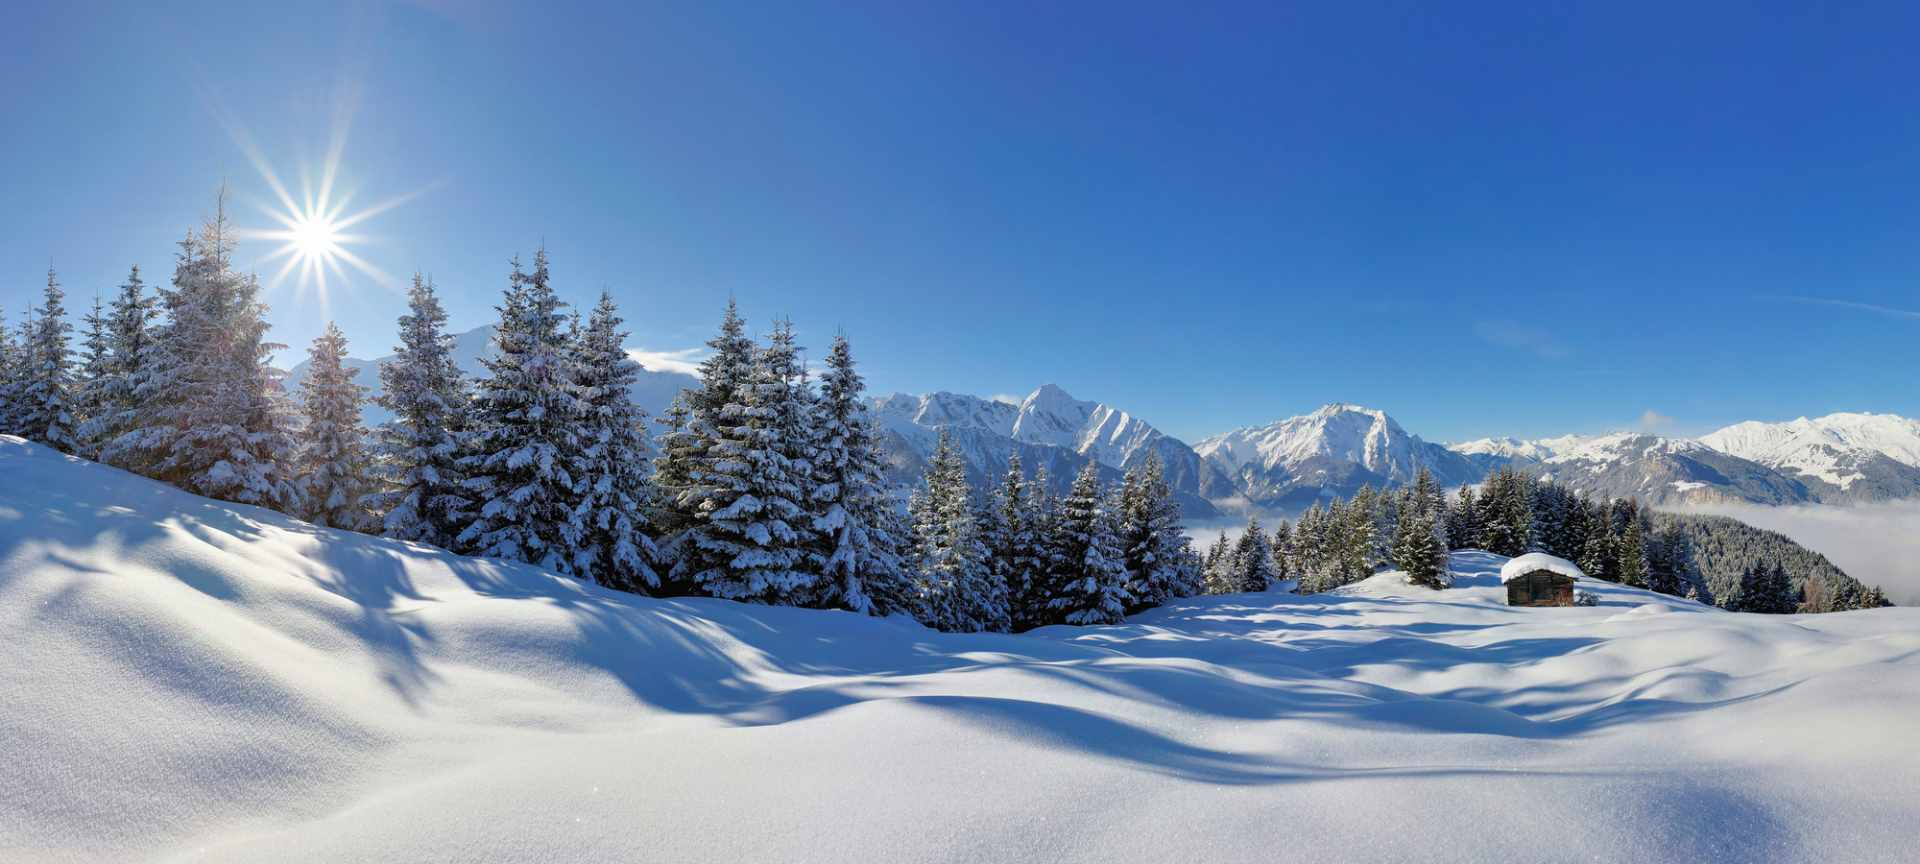 Enjoy the snow-covered winter landscape in Zillertal